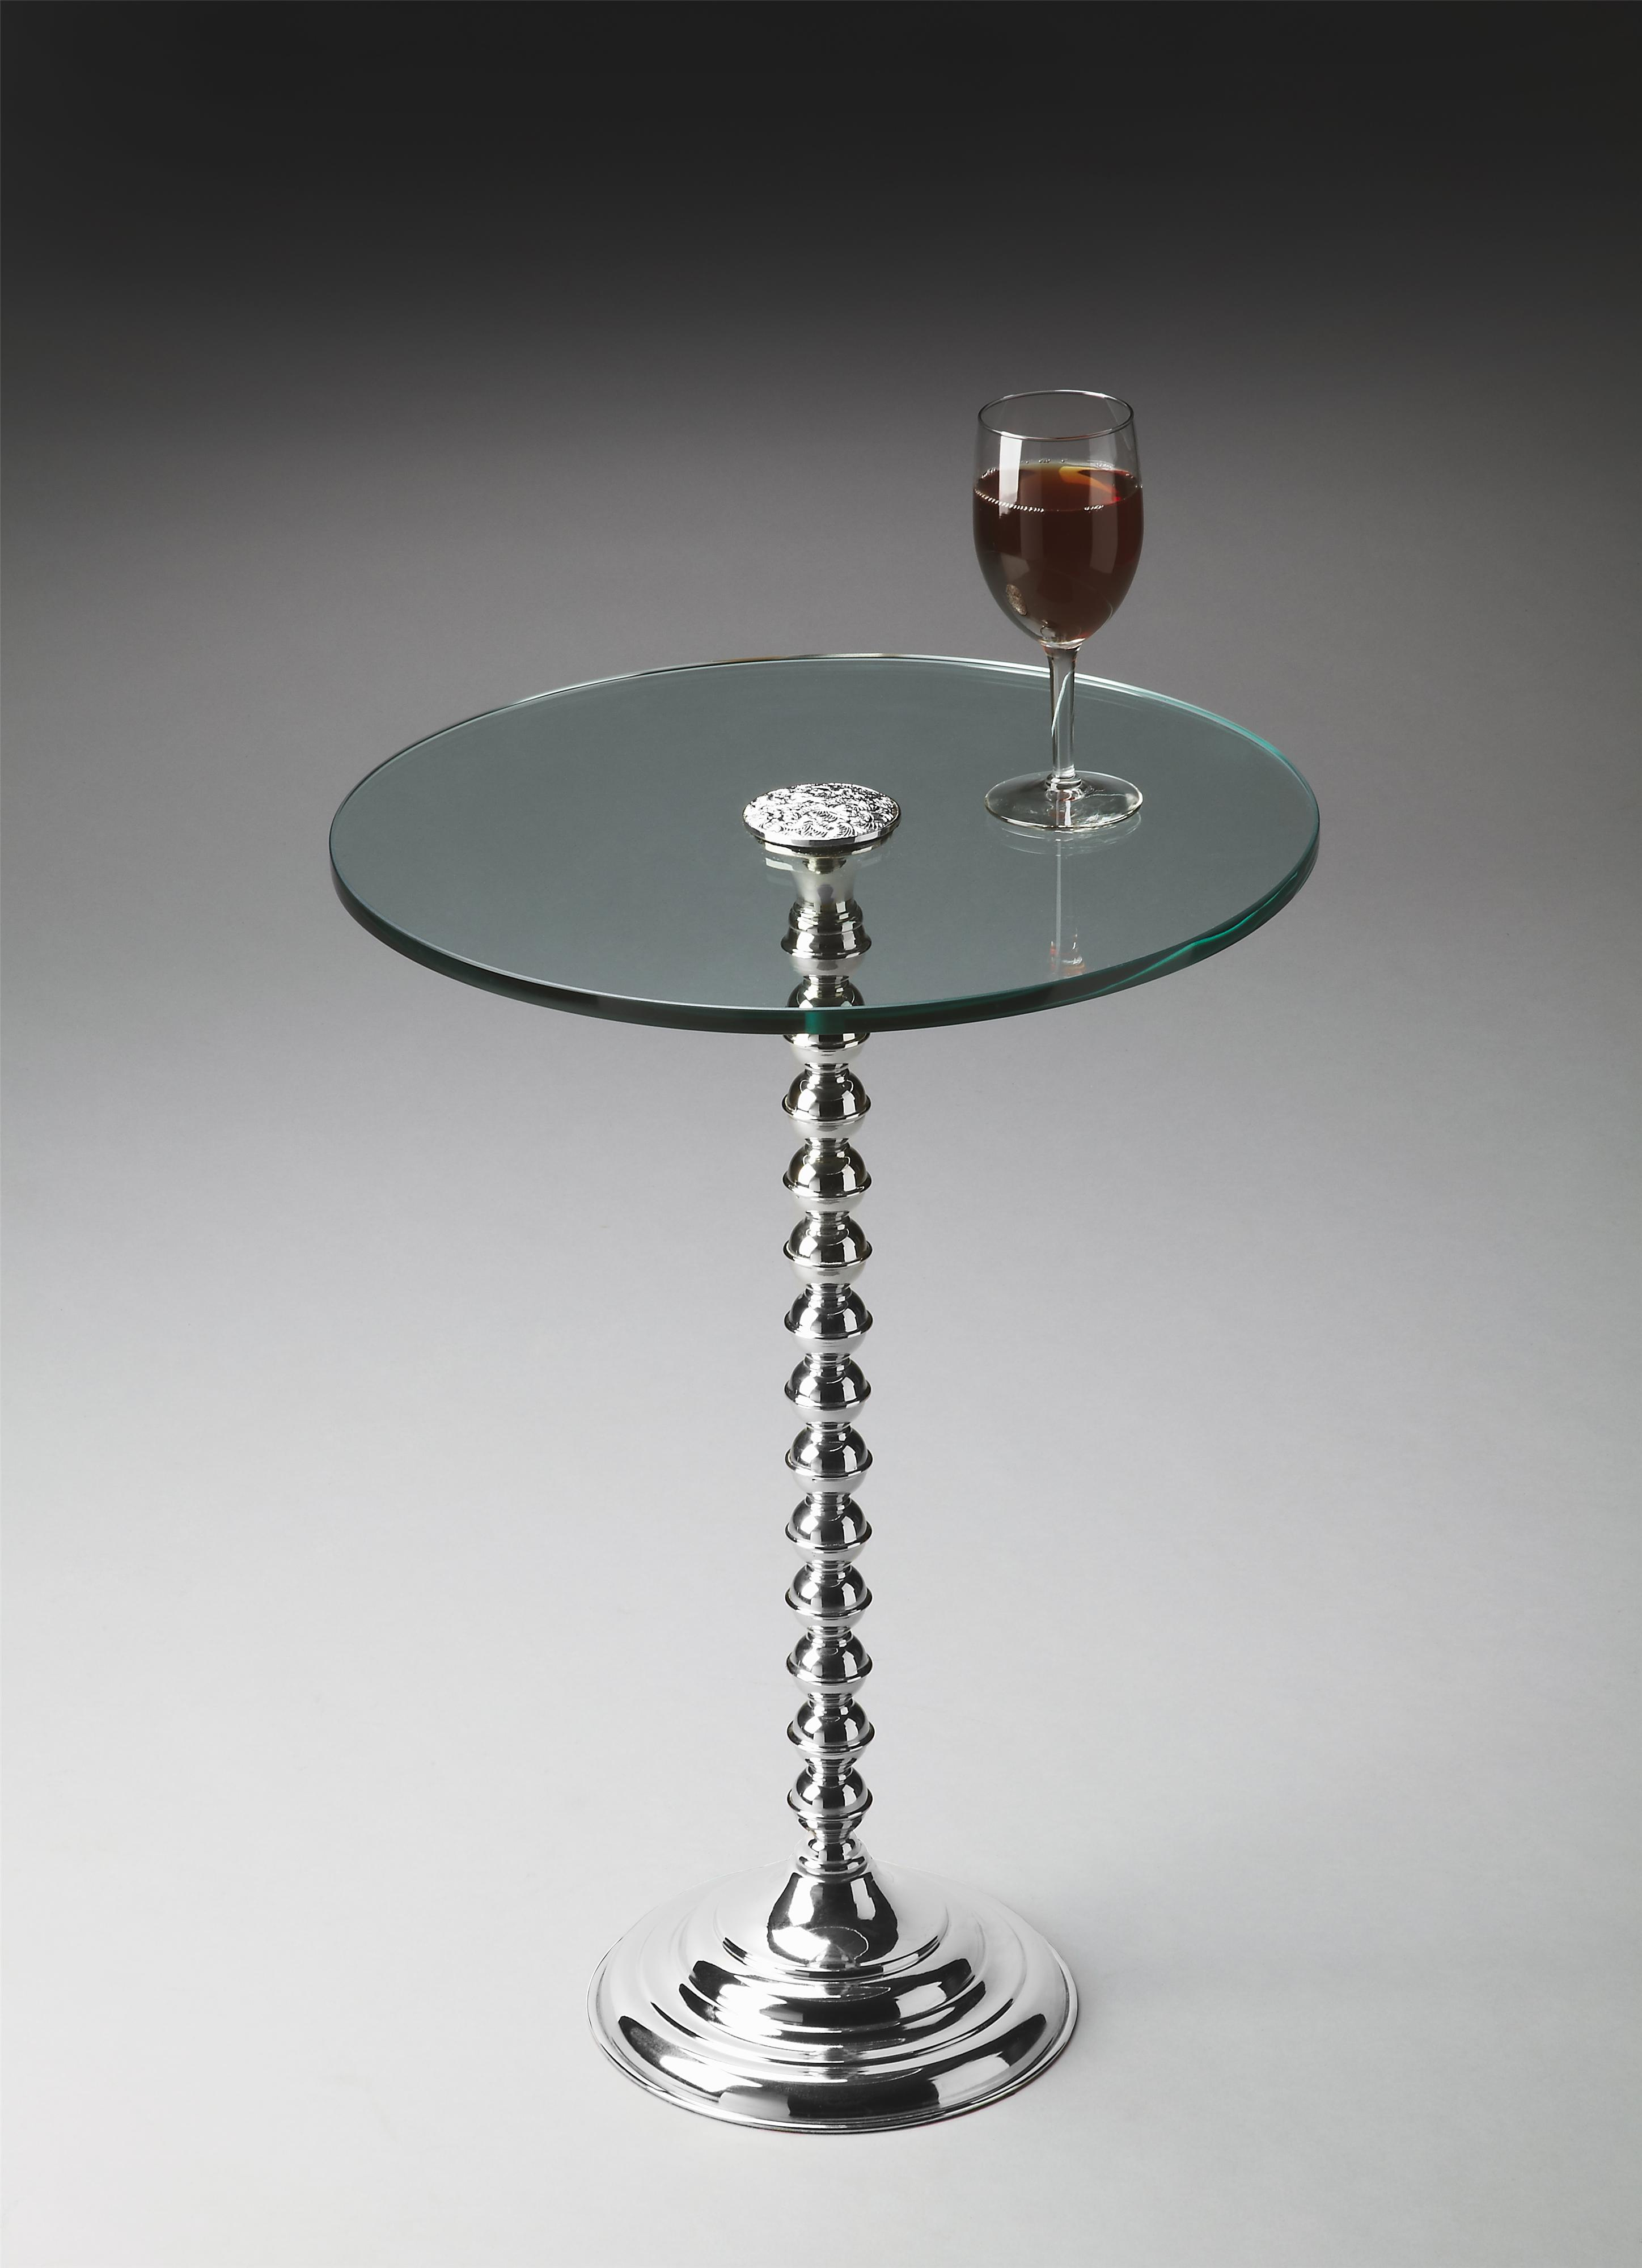 Butler Specialty Company Modern Expressions Pedestal Table - Item Number: 2875220